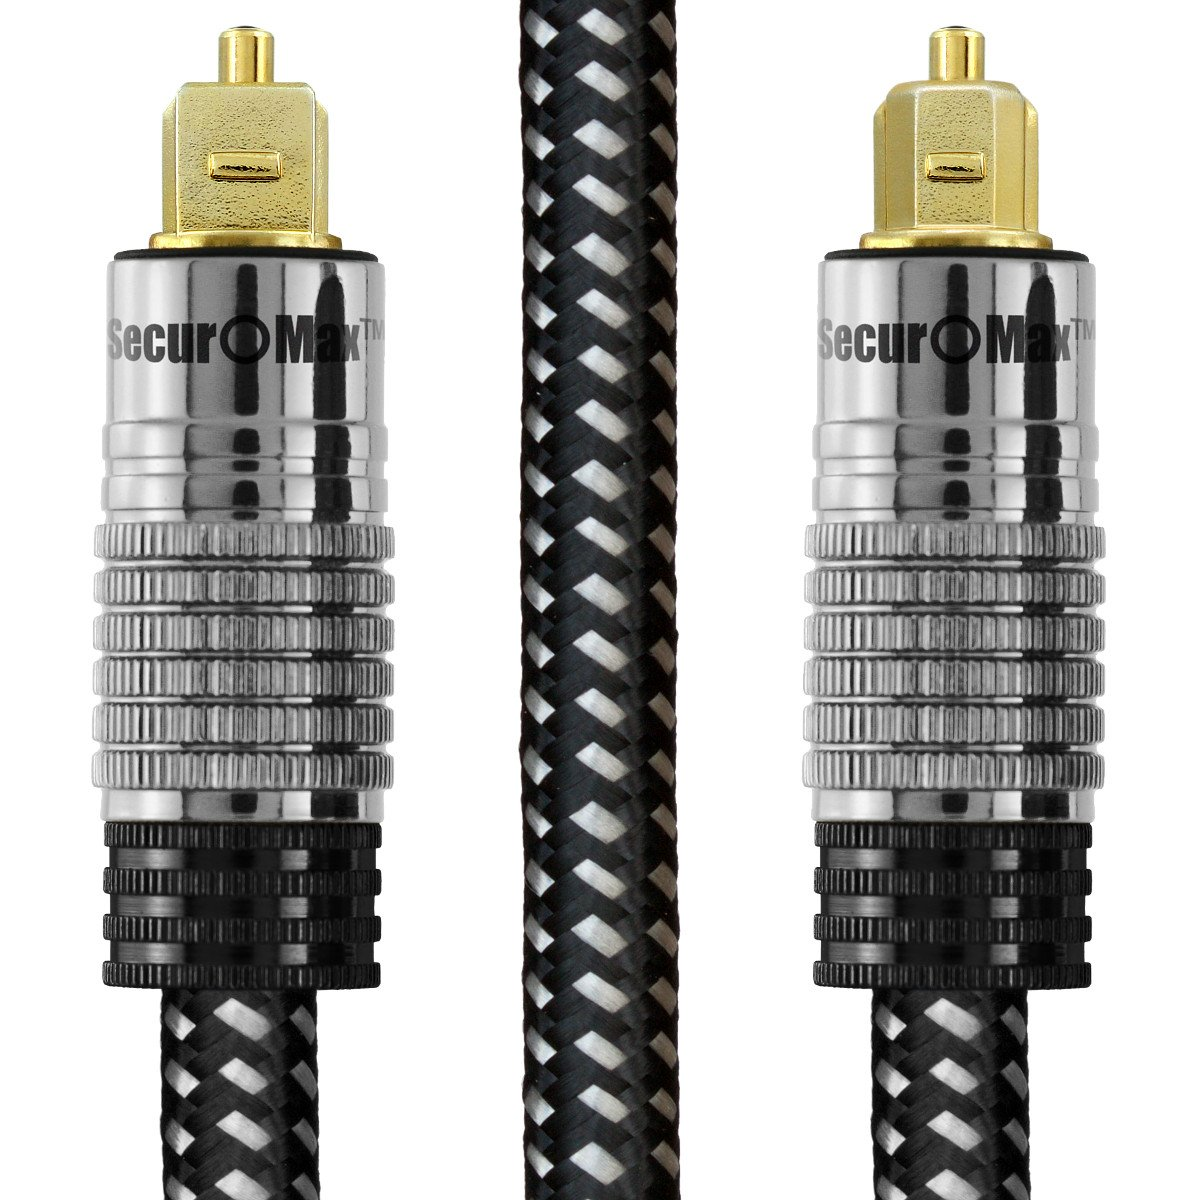 Best Rated In Fiber Optic Cables Helpful Customer Reviews Cablethe Global Solution Components Securomax Digital Optical Audio Cable Toslink S Pdif Adat Eiaj